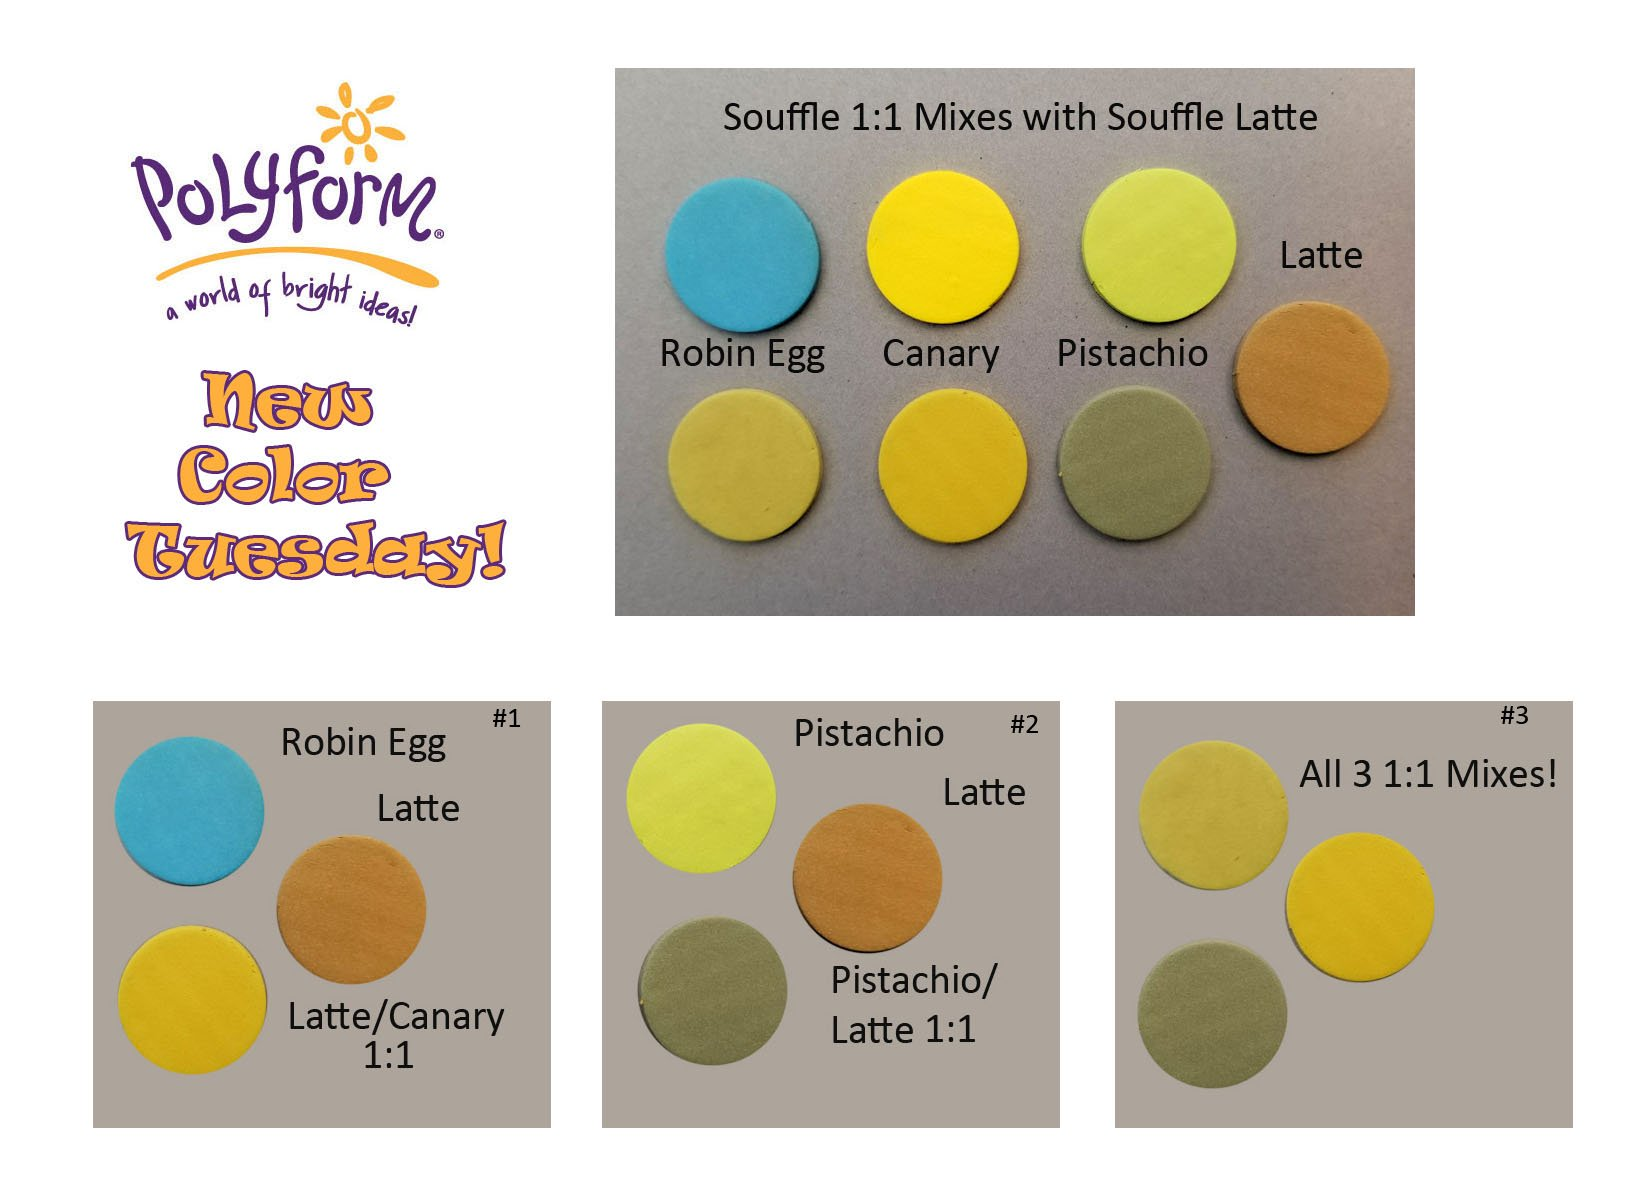 New Color Tuesday! syn's Favorites from 2018